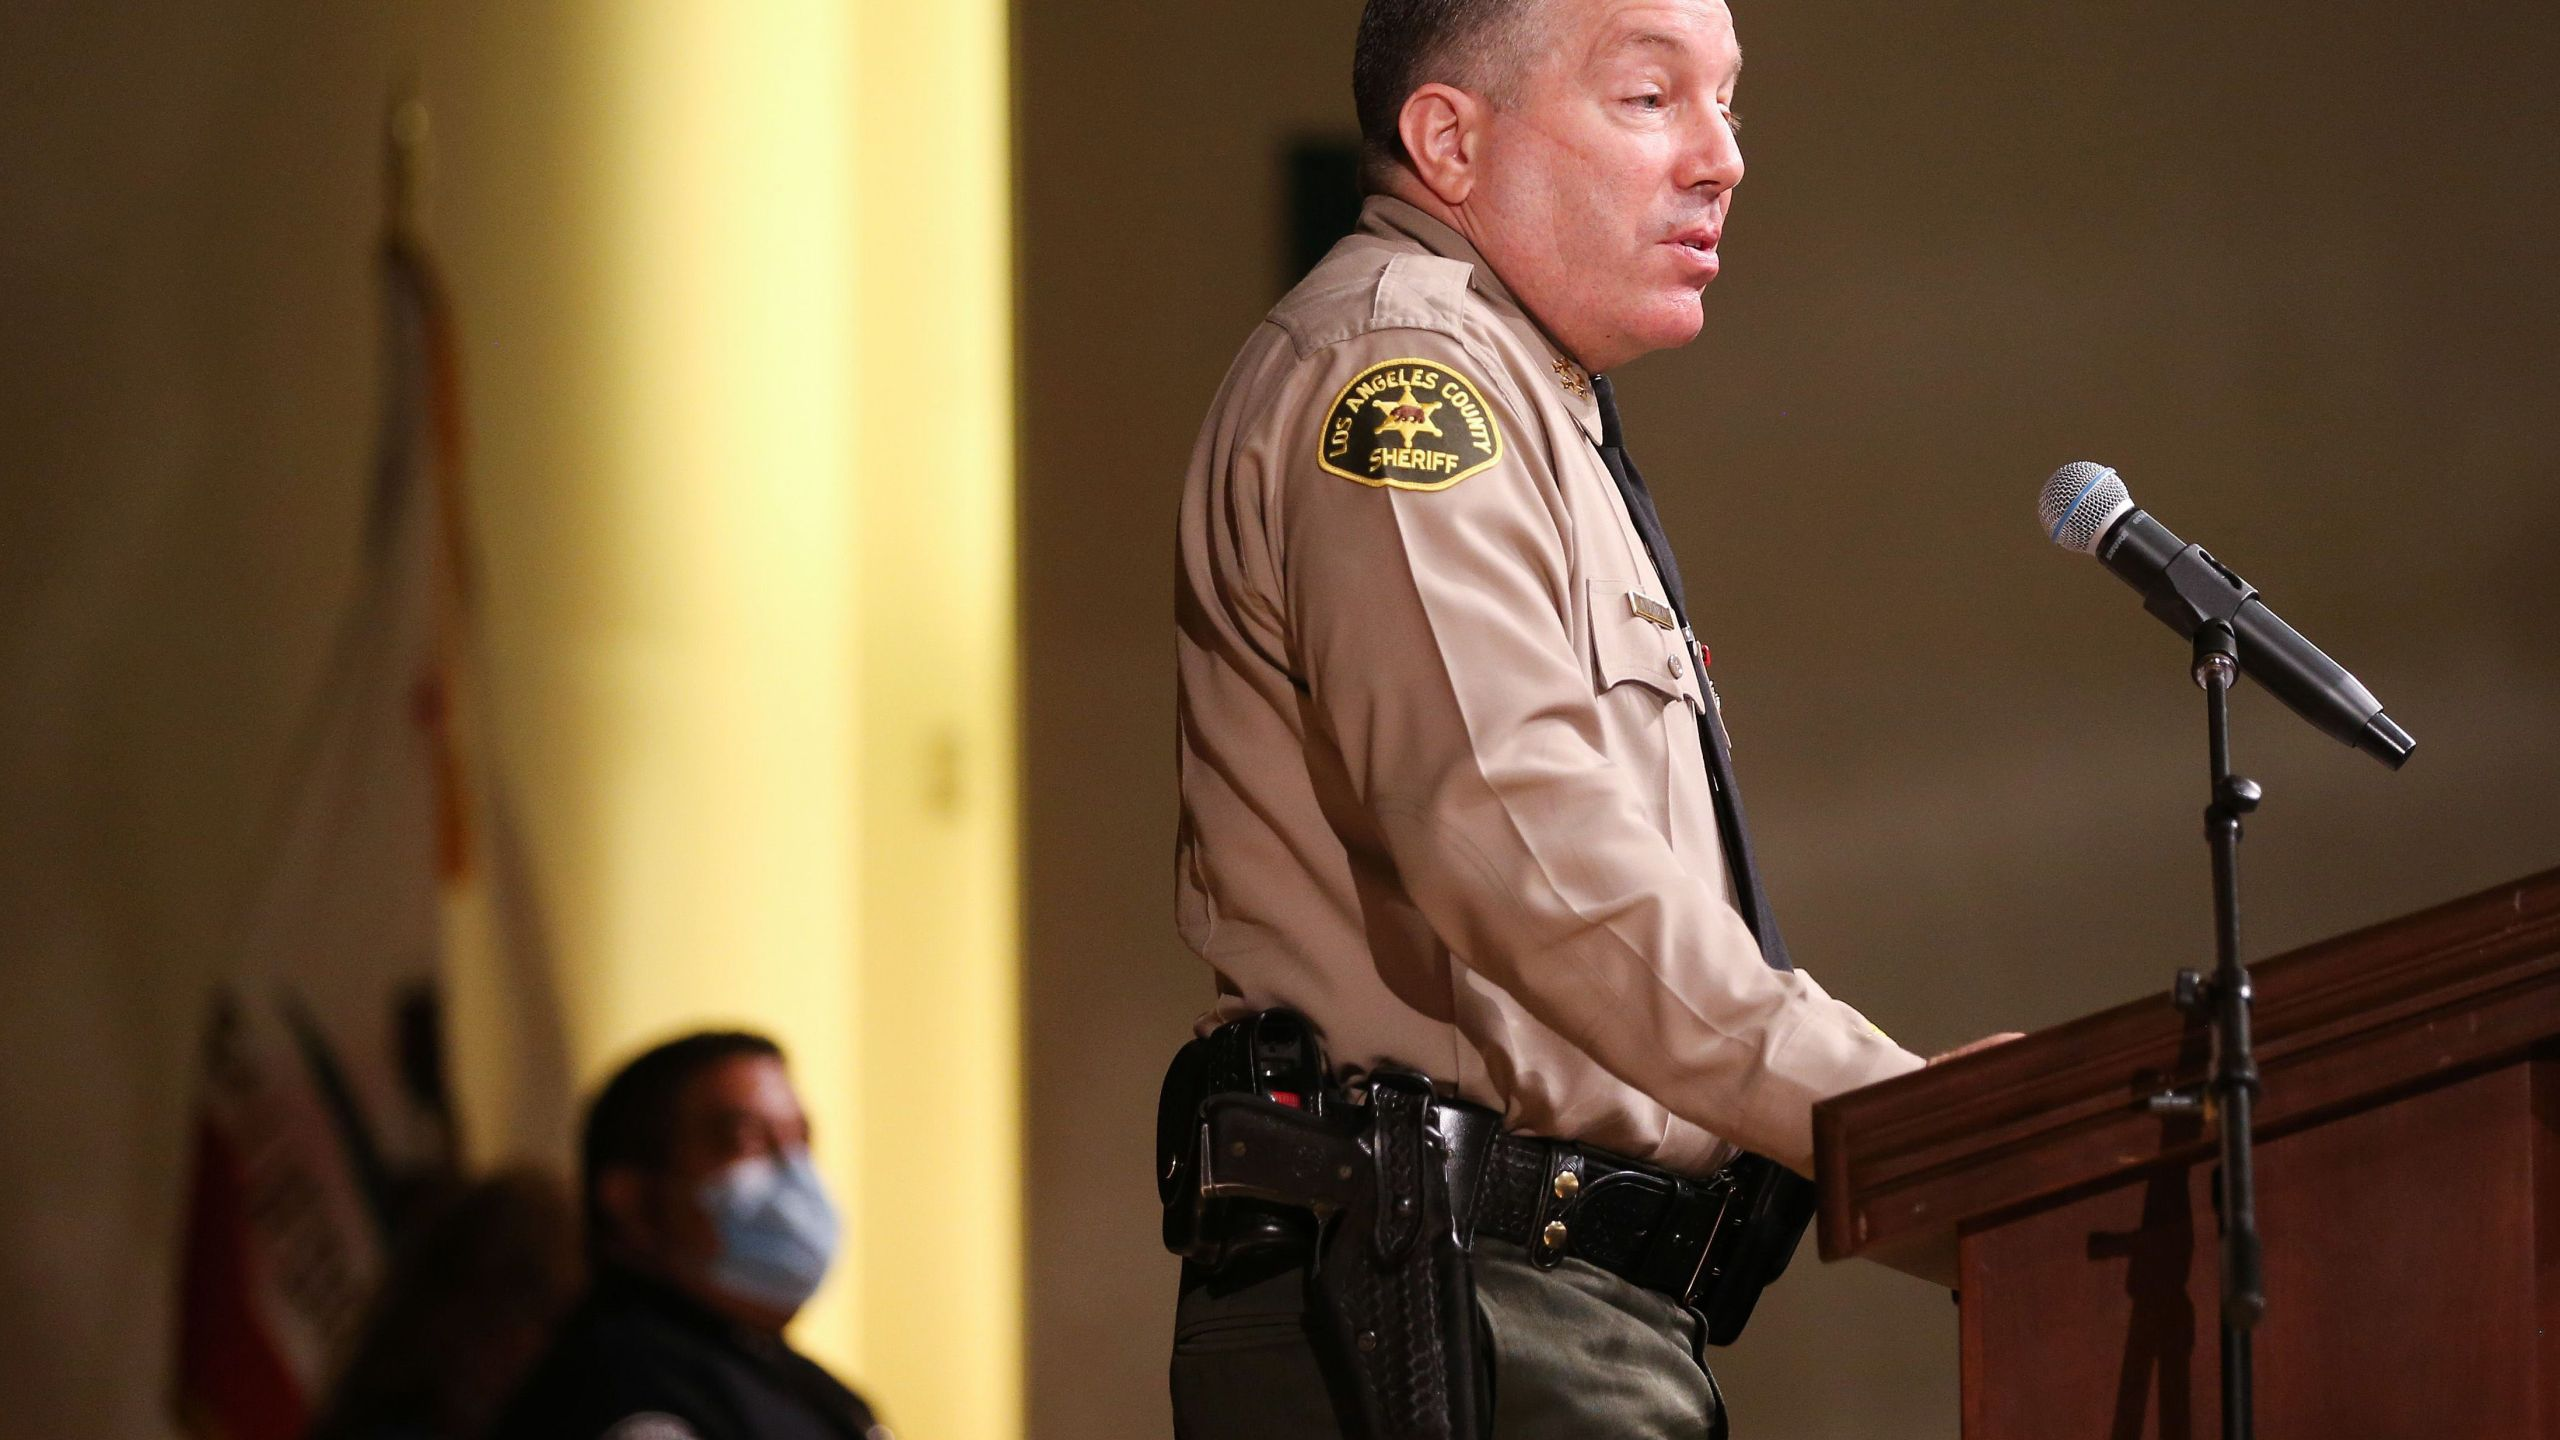 Los Angeles County Sheriff Alex Villanueva speaks at the graduation ceremony for Los Angeles County Sheriff's Department Academy Class 451 at East Los Angeles College amid the COVID-19 pandemic on August 21, 2020 in Monterey Park. (Mario Tama/Getty Images)